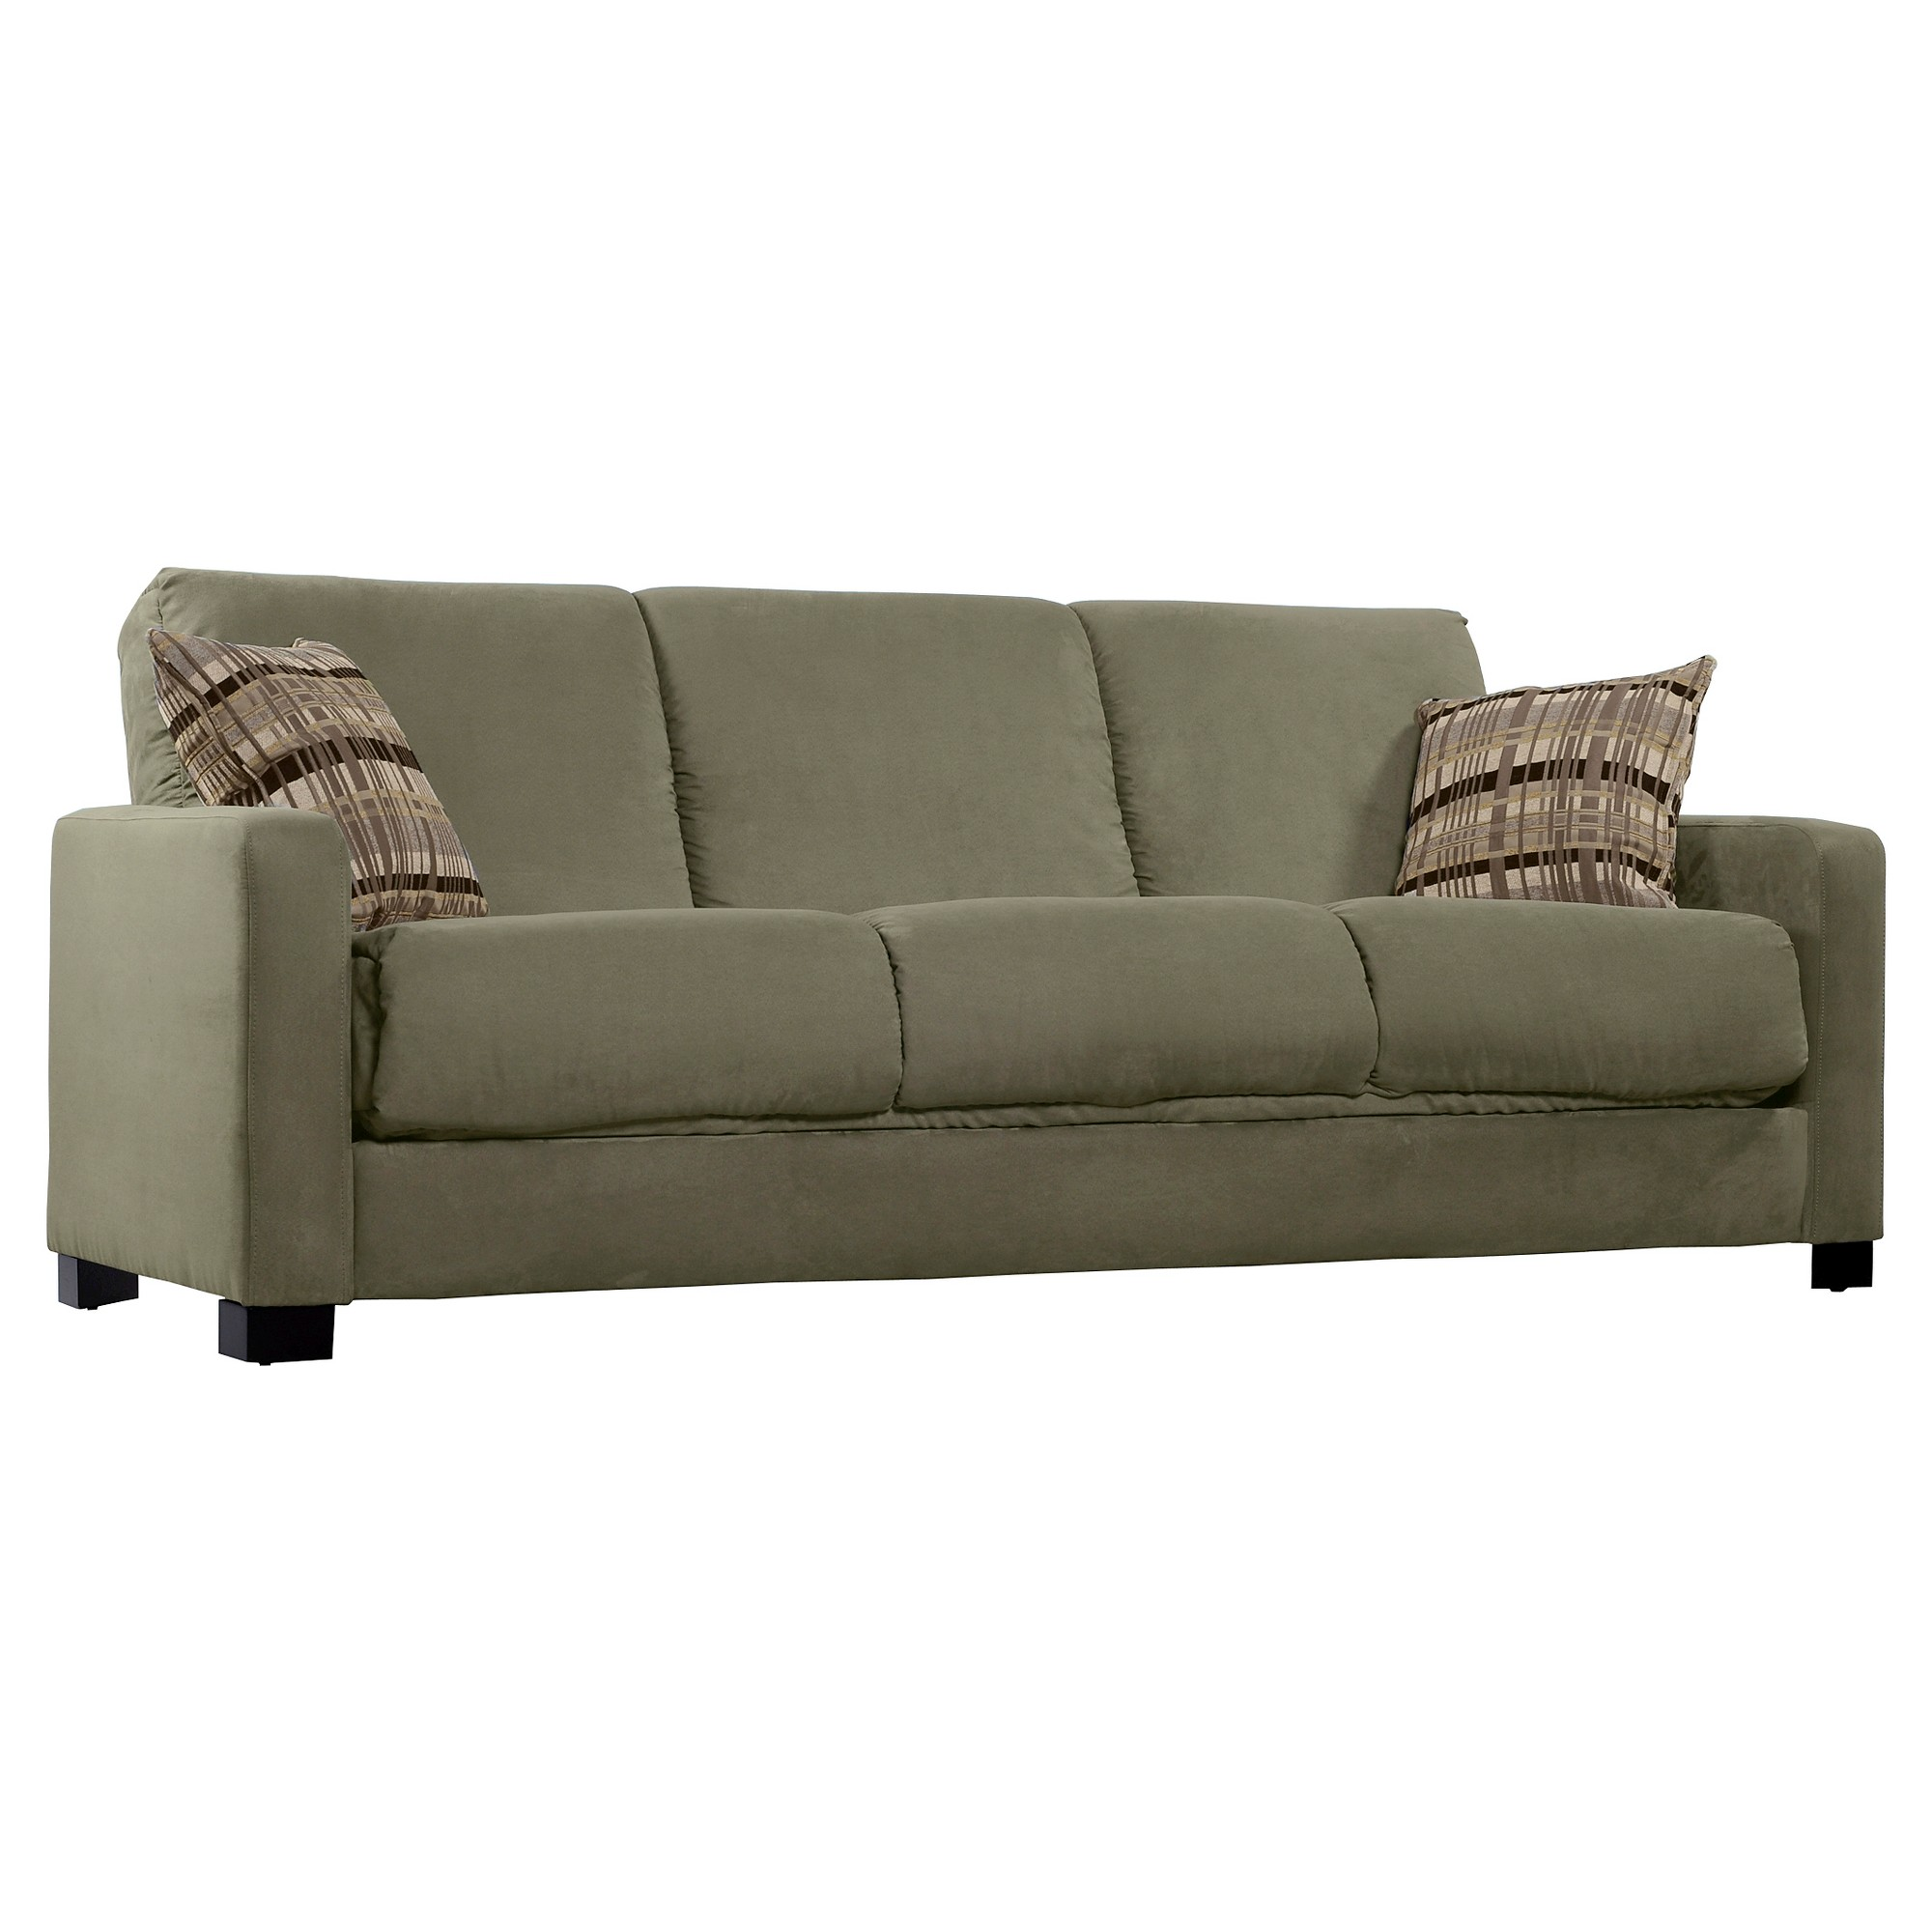 Thora Convert A Couch Sage With Stone Plaid Pillows Handy